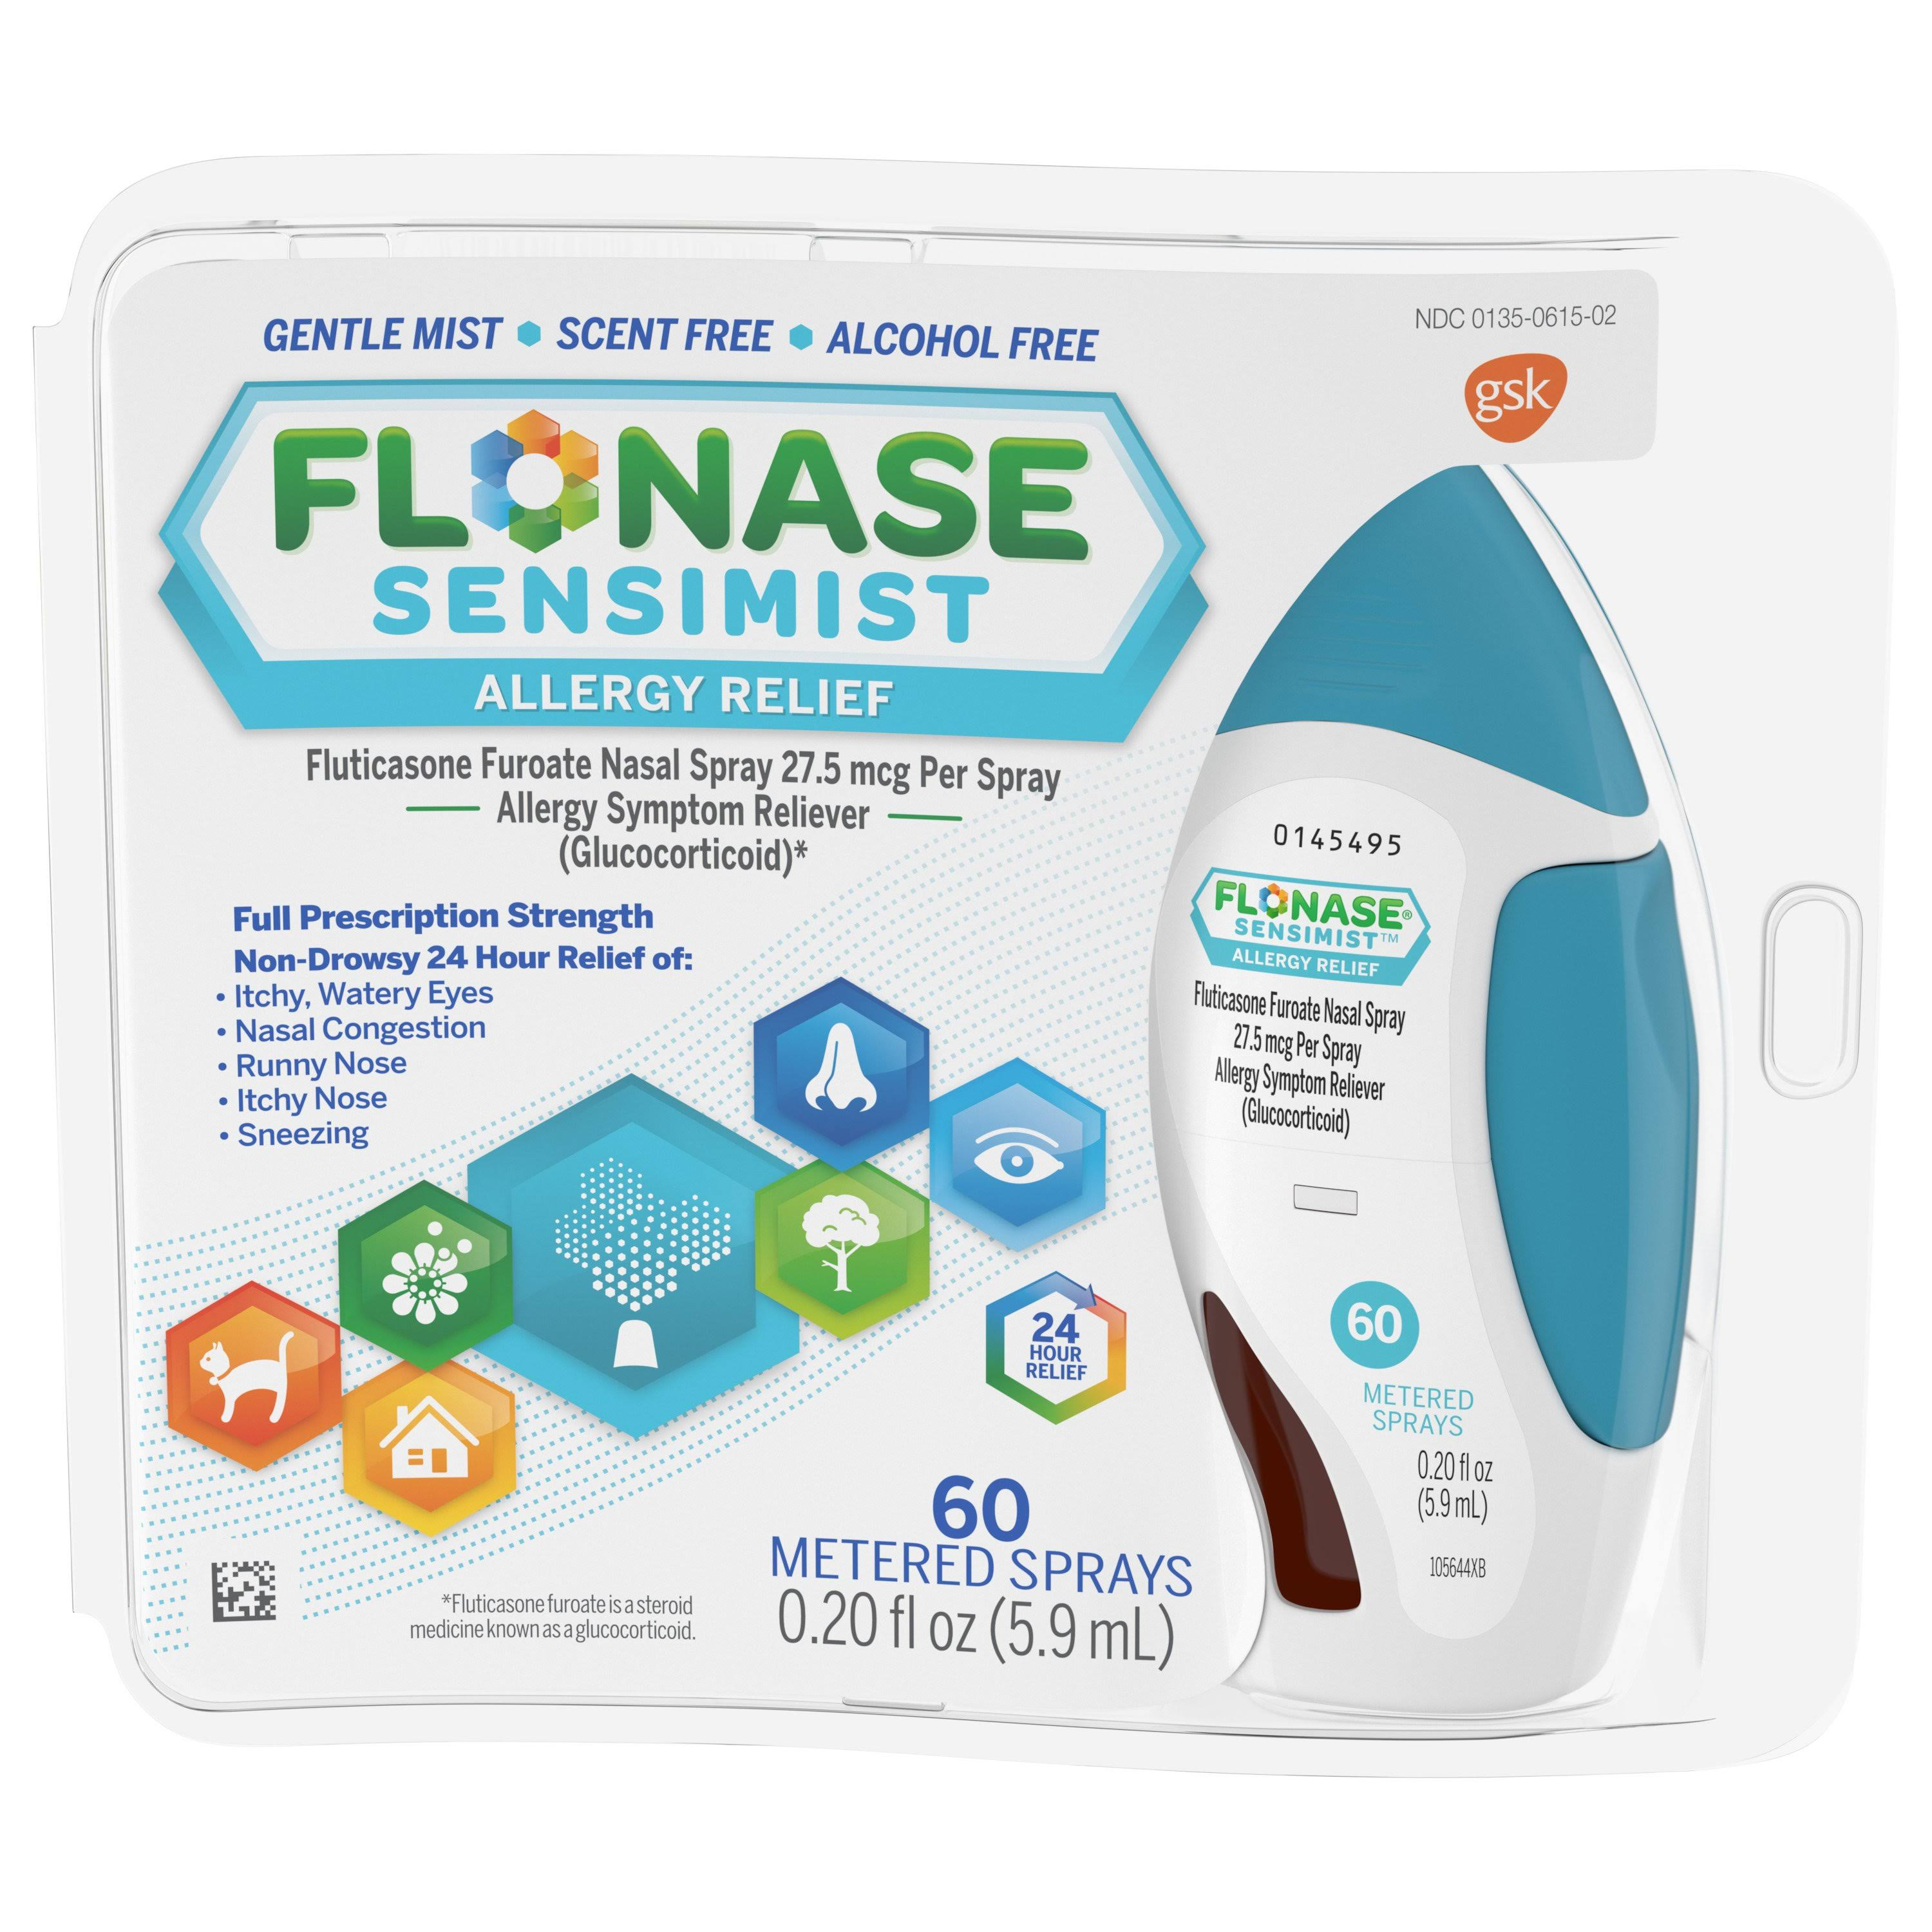 GSK Flonase Sensimist Allergy Relief Metered Sprays - 0.34oz, 60 Sprays